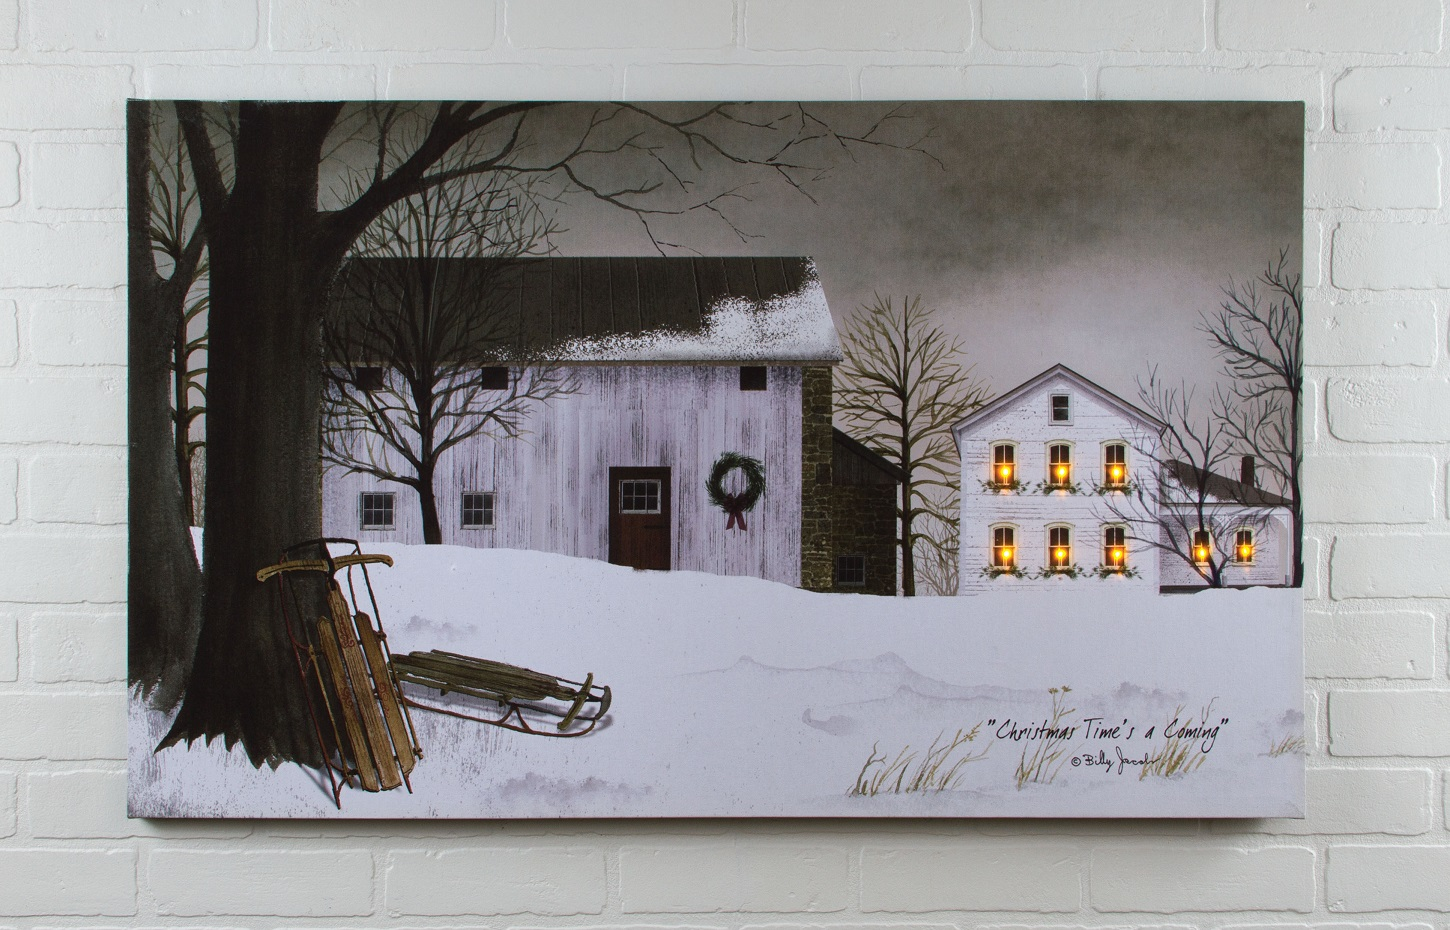 billy jacobs christmas time farm radiance lighted canvas by ohio